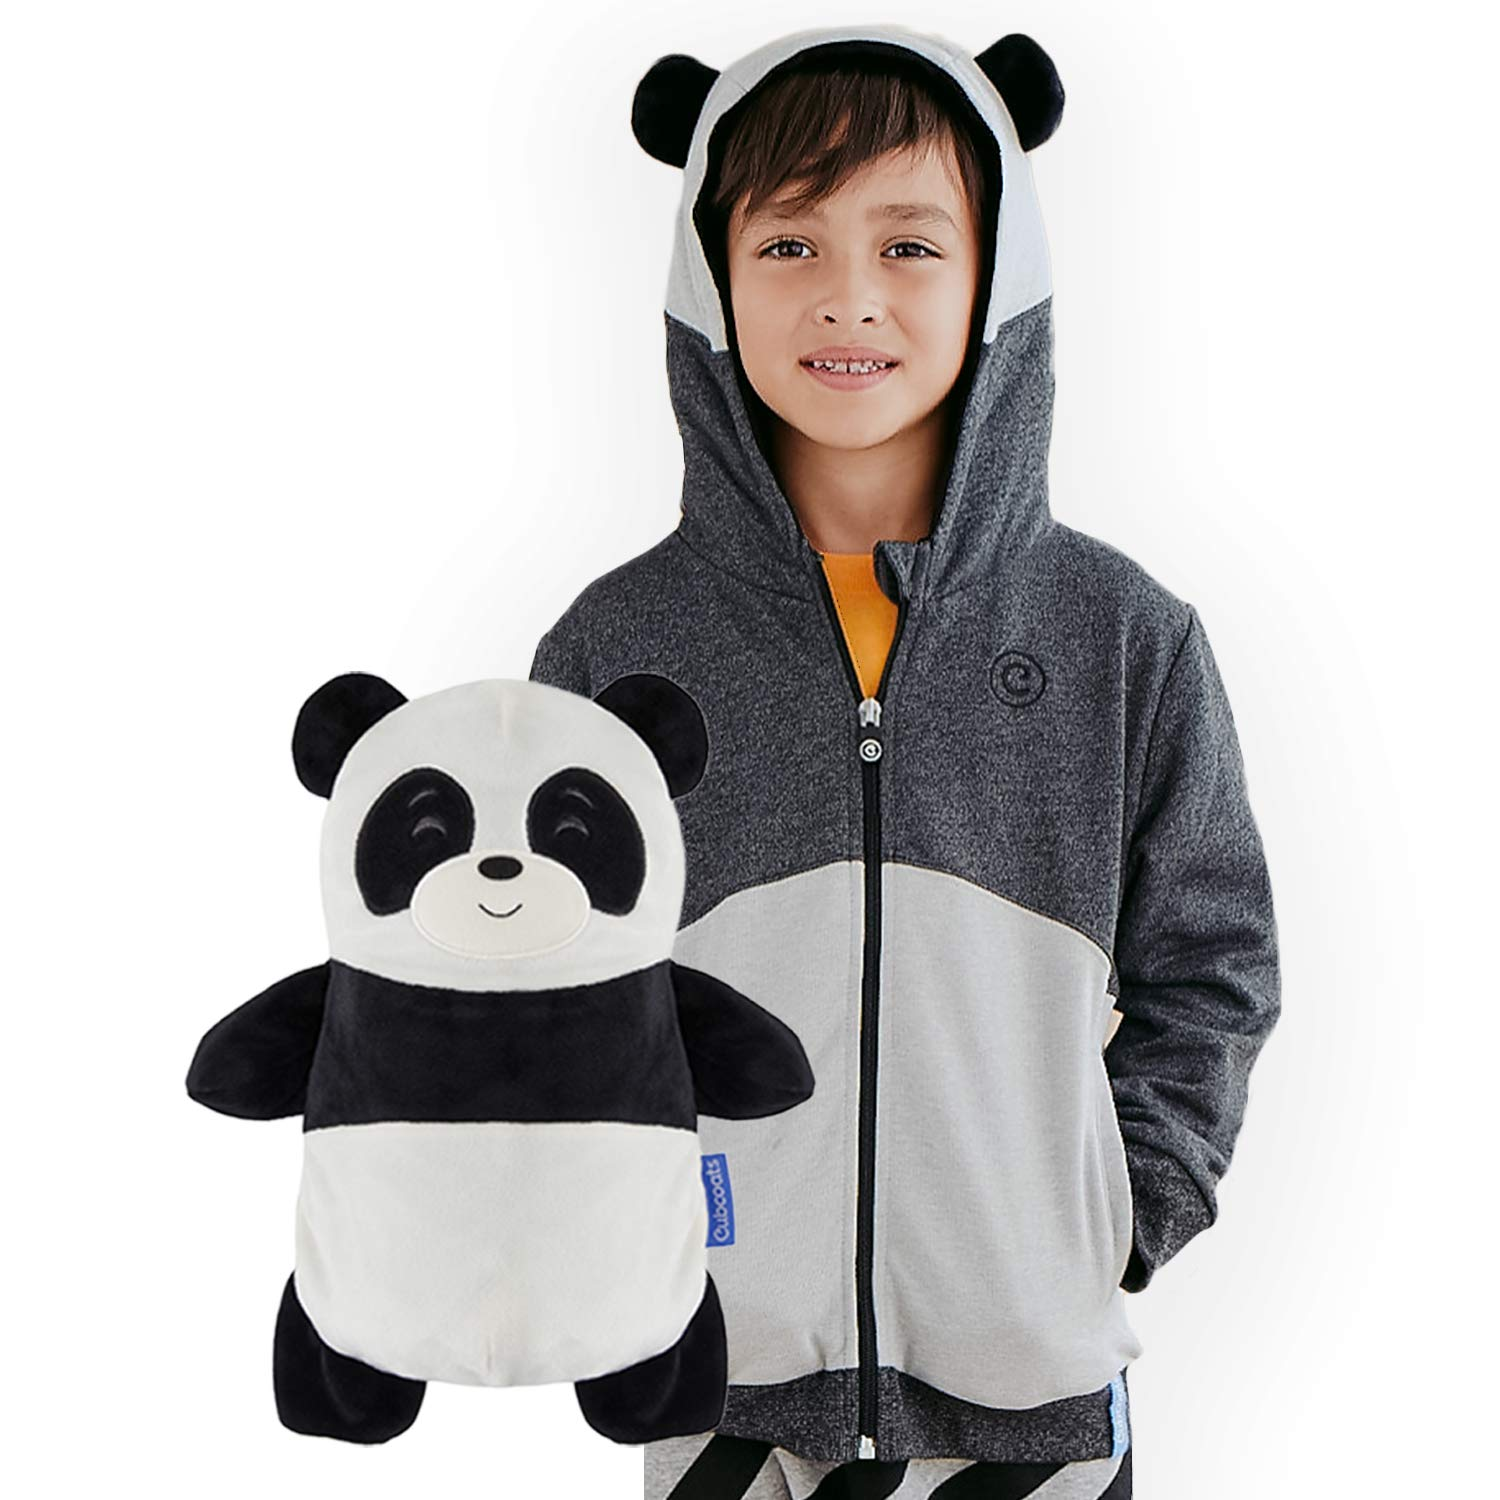 2-in-1 Transforming Hoodie /& Soft Plushie Black /& White CUBCOATS Papo The Panda